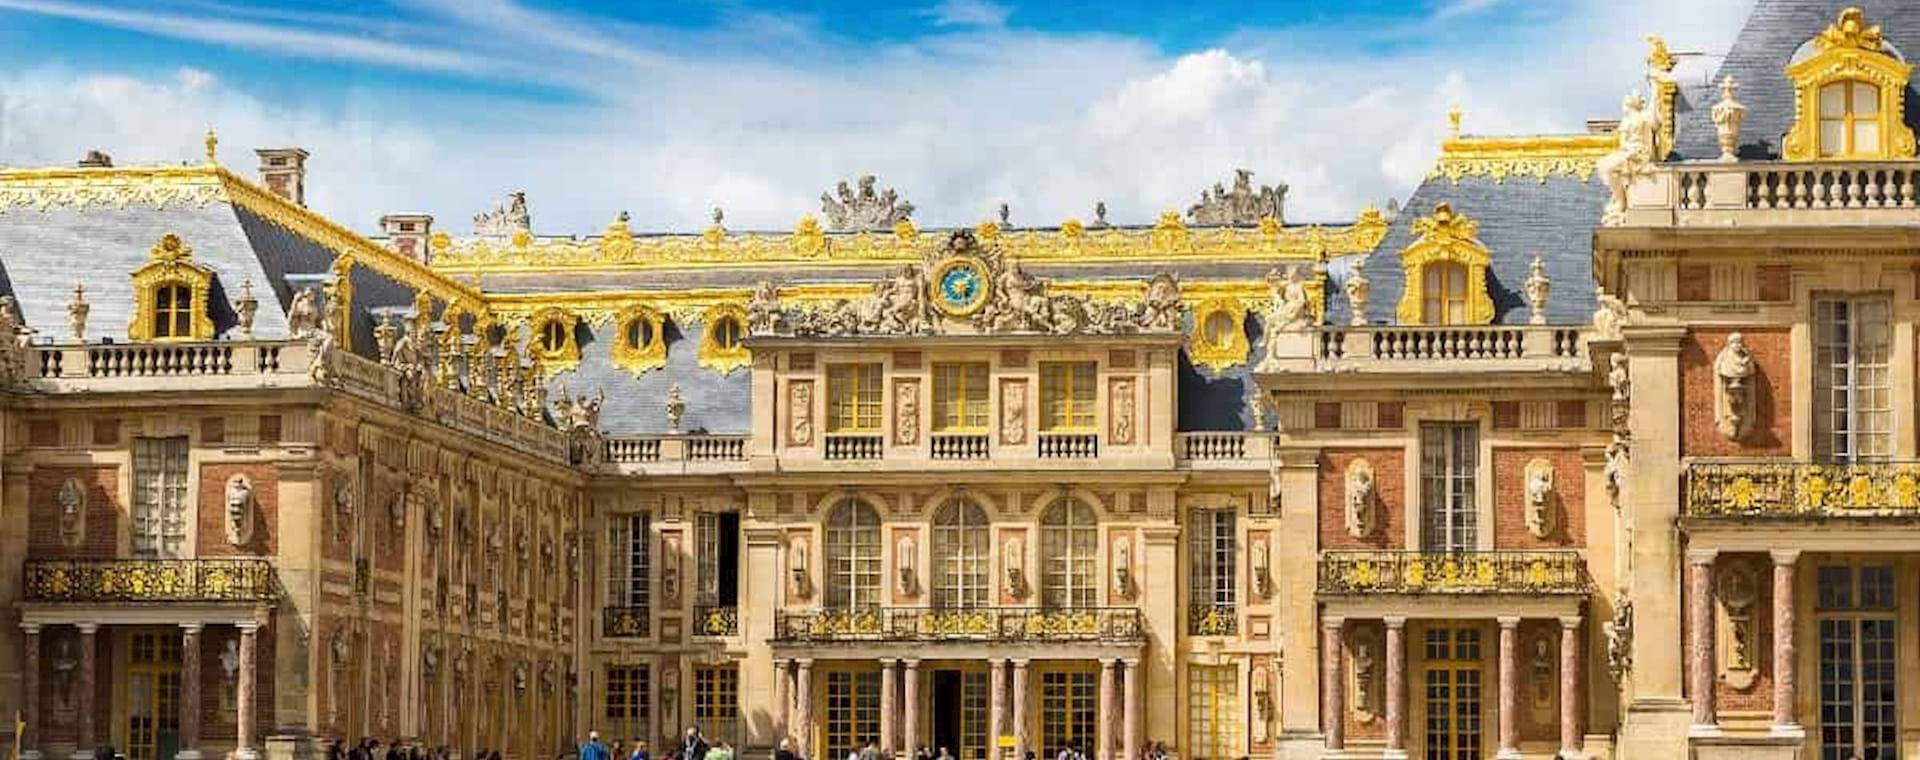 Beautiful view of the Versailles Palace